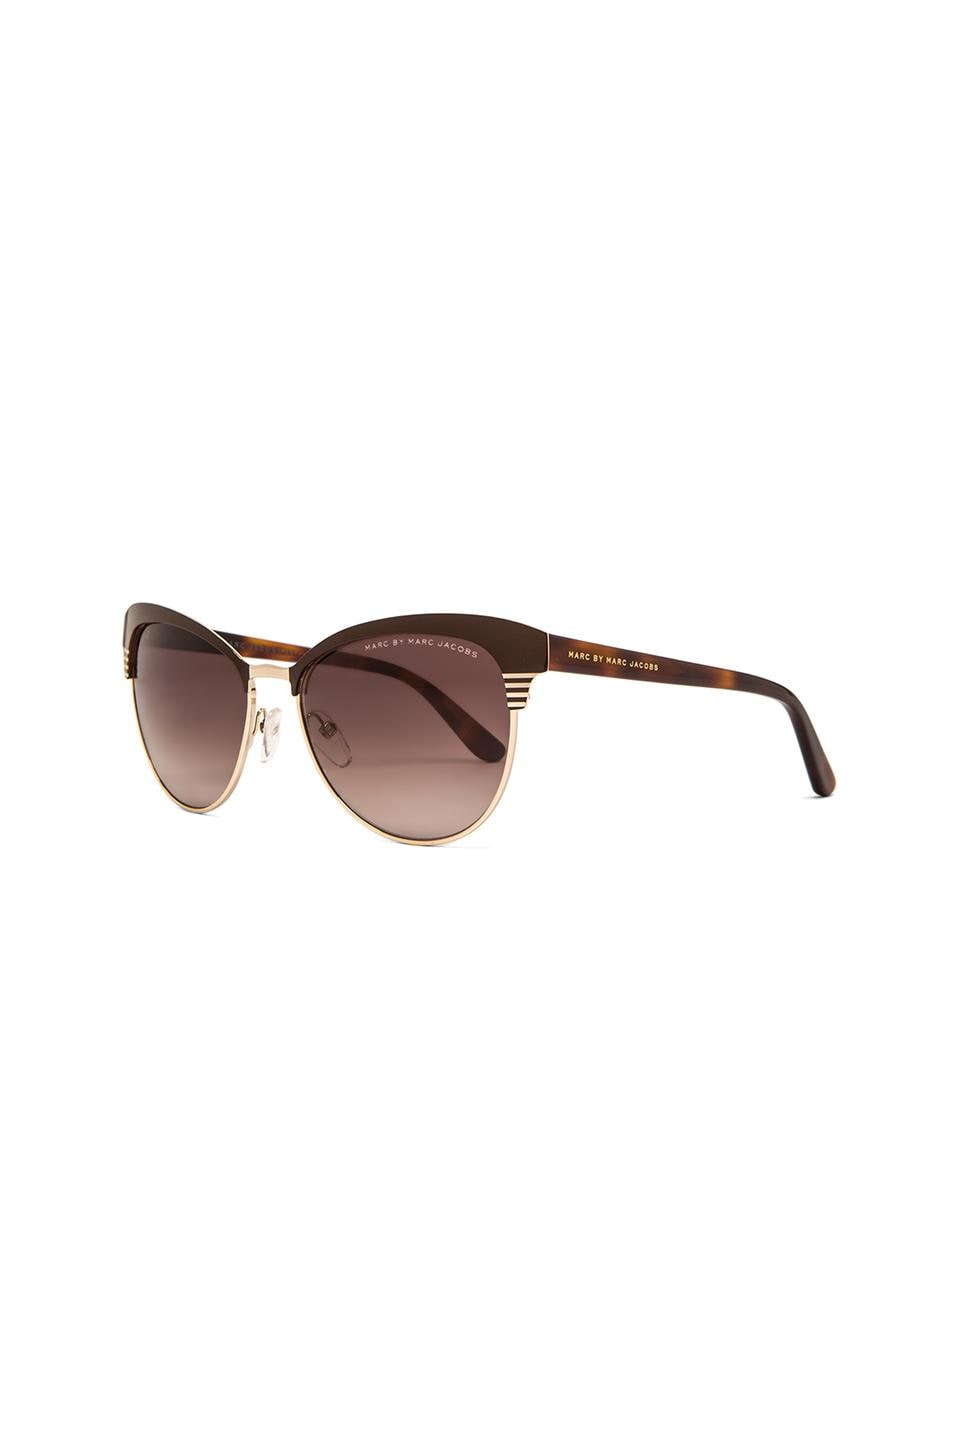 Marc Jacobs Cat Eye Sunglasses  marc by marc jacobs metal frame cat eye sunglasses in light gold